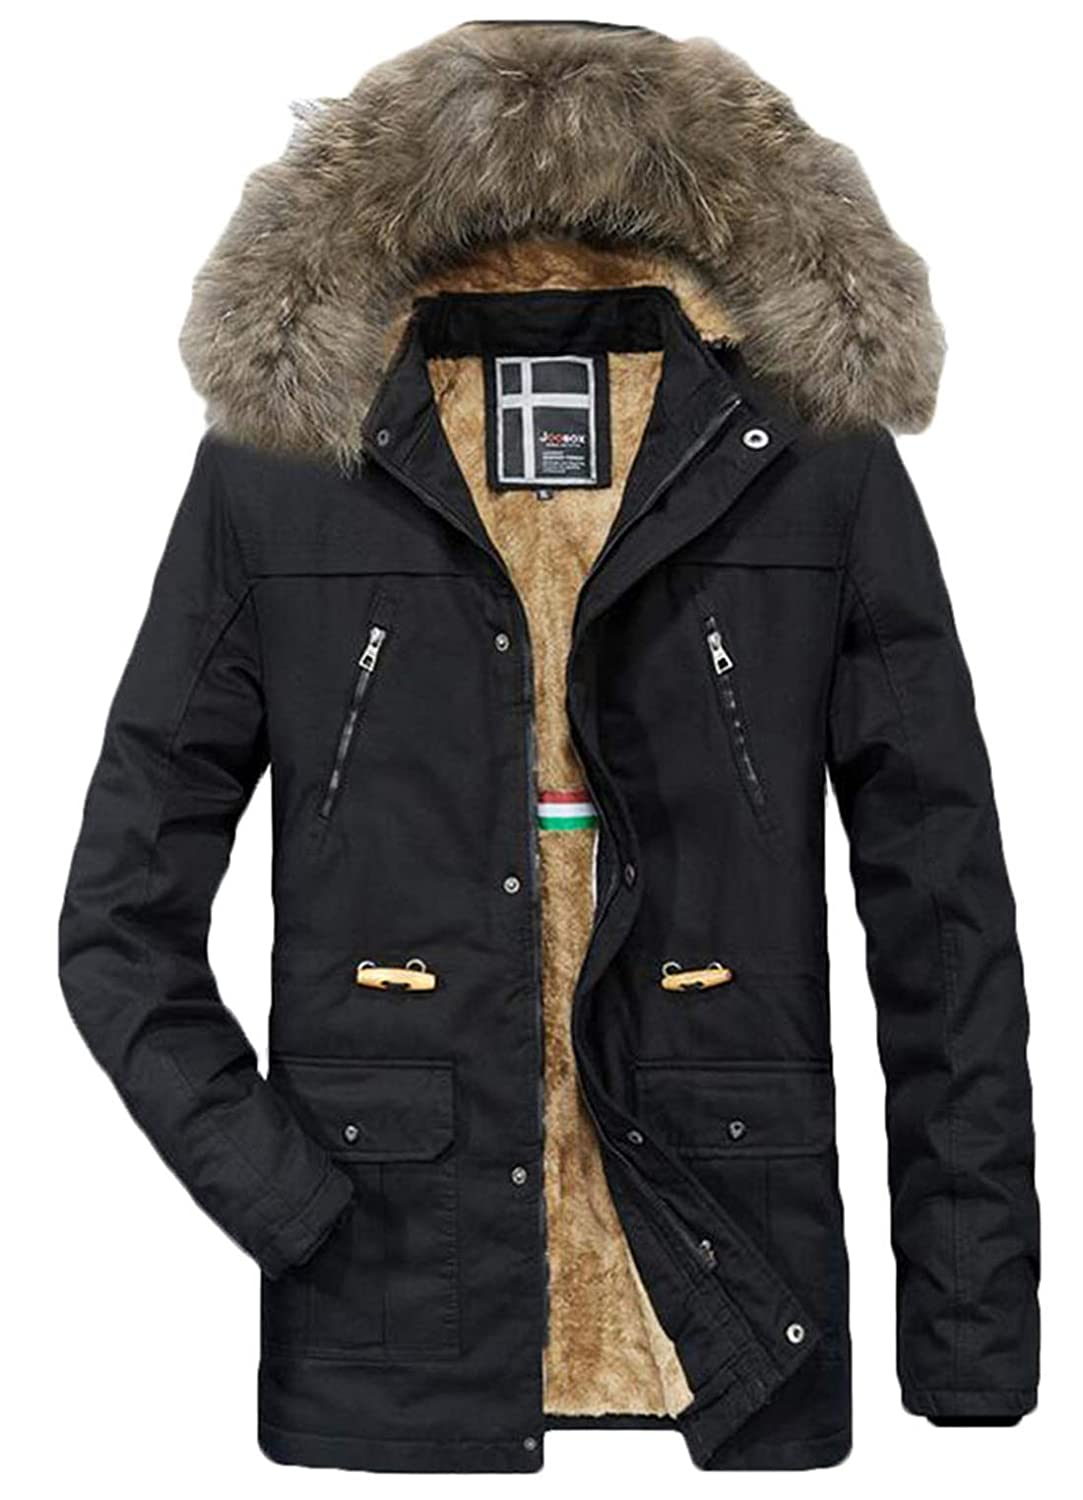 X-Future Mens Warm Thicken Winter Fleece Lined Faux Fur Collar Hooded Jacket Outwear